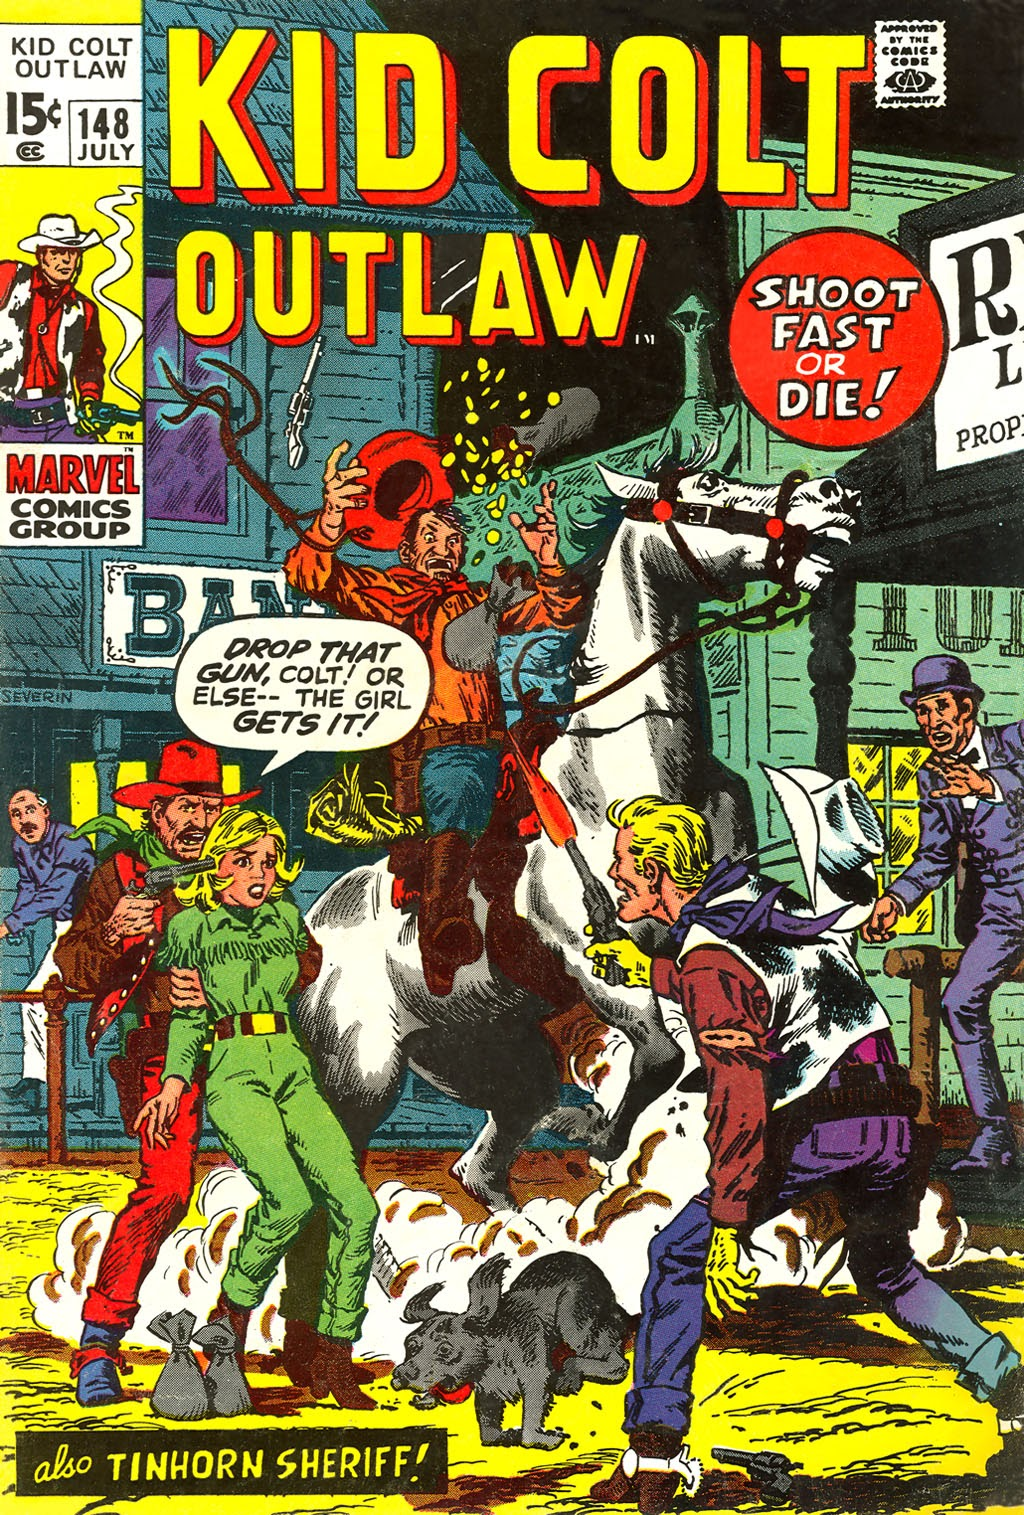 Kid Colt Outlaw issue 148 - Page 1